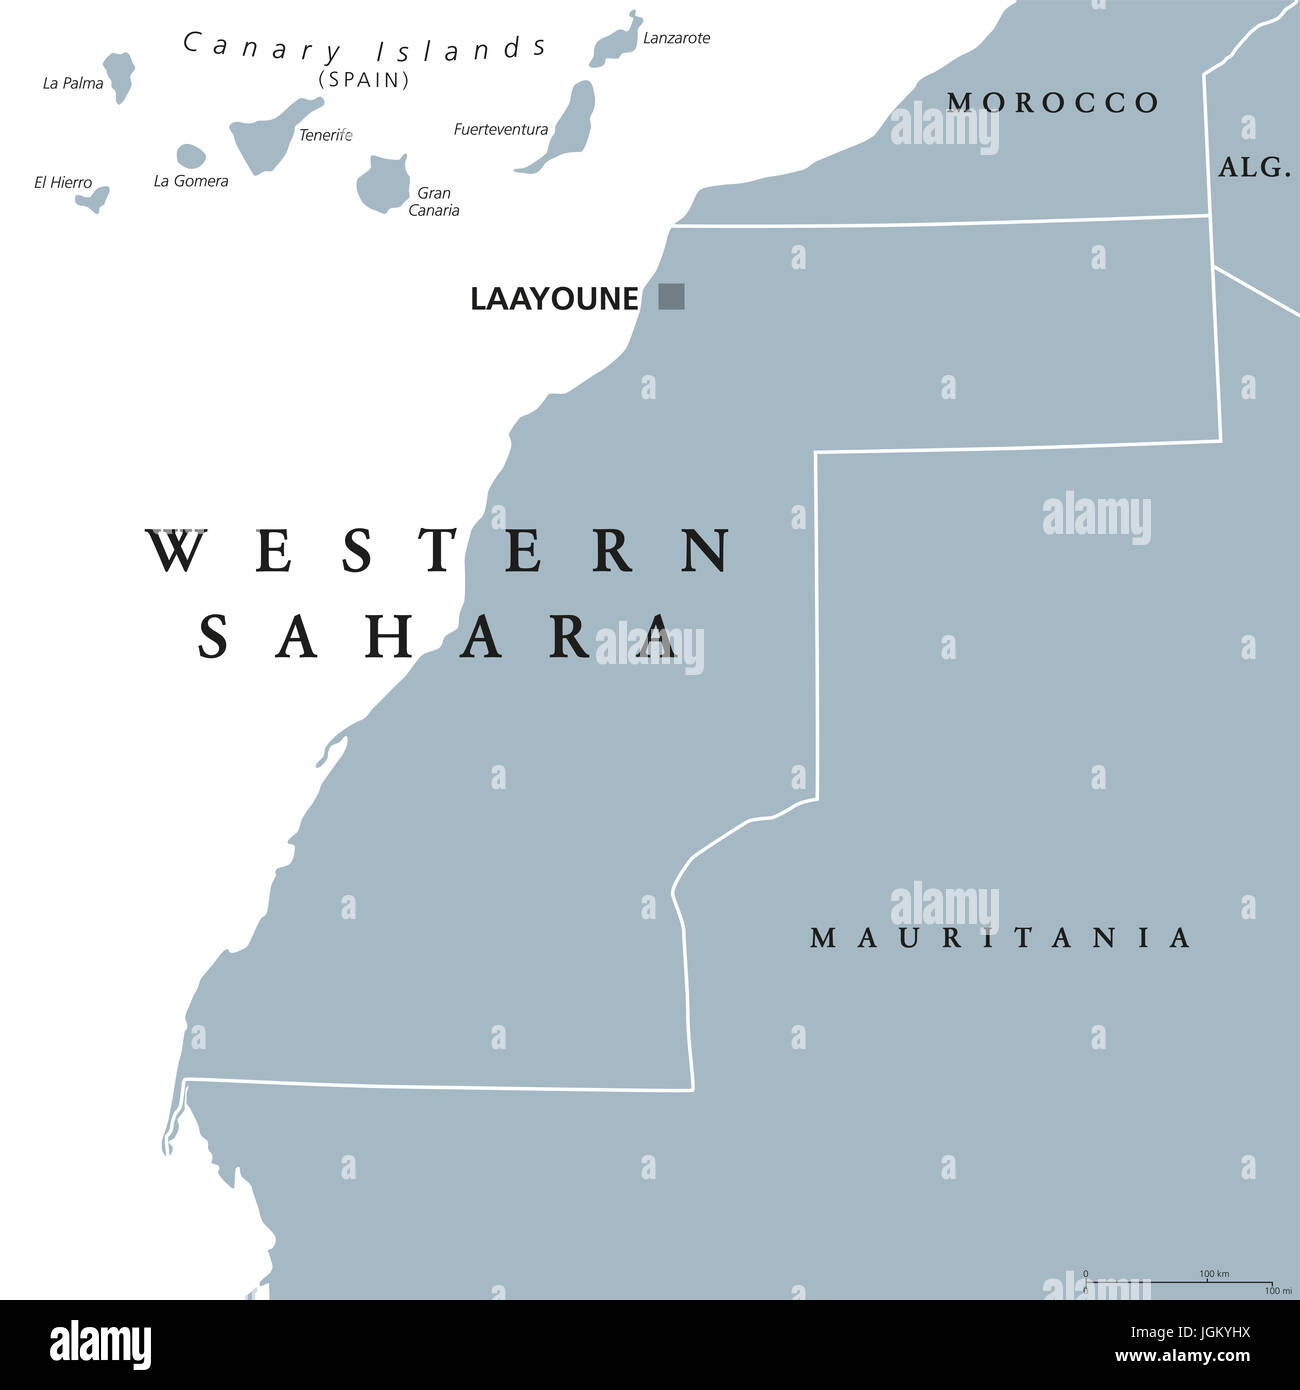 Western Sahara political map with capital Laayoune. Disputed, partially Moroccan occupied territory in Maghreb region - Stock Image